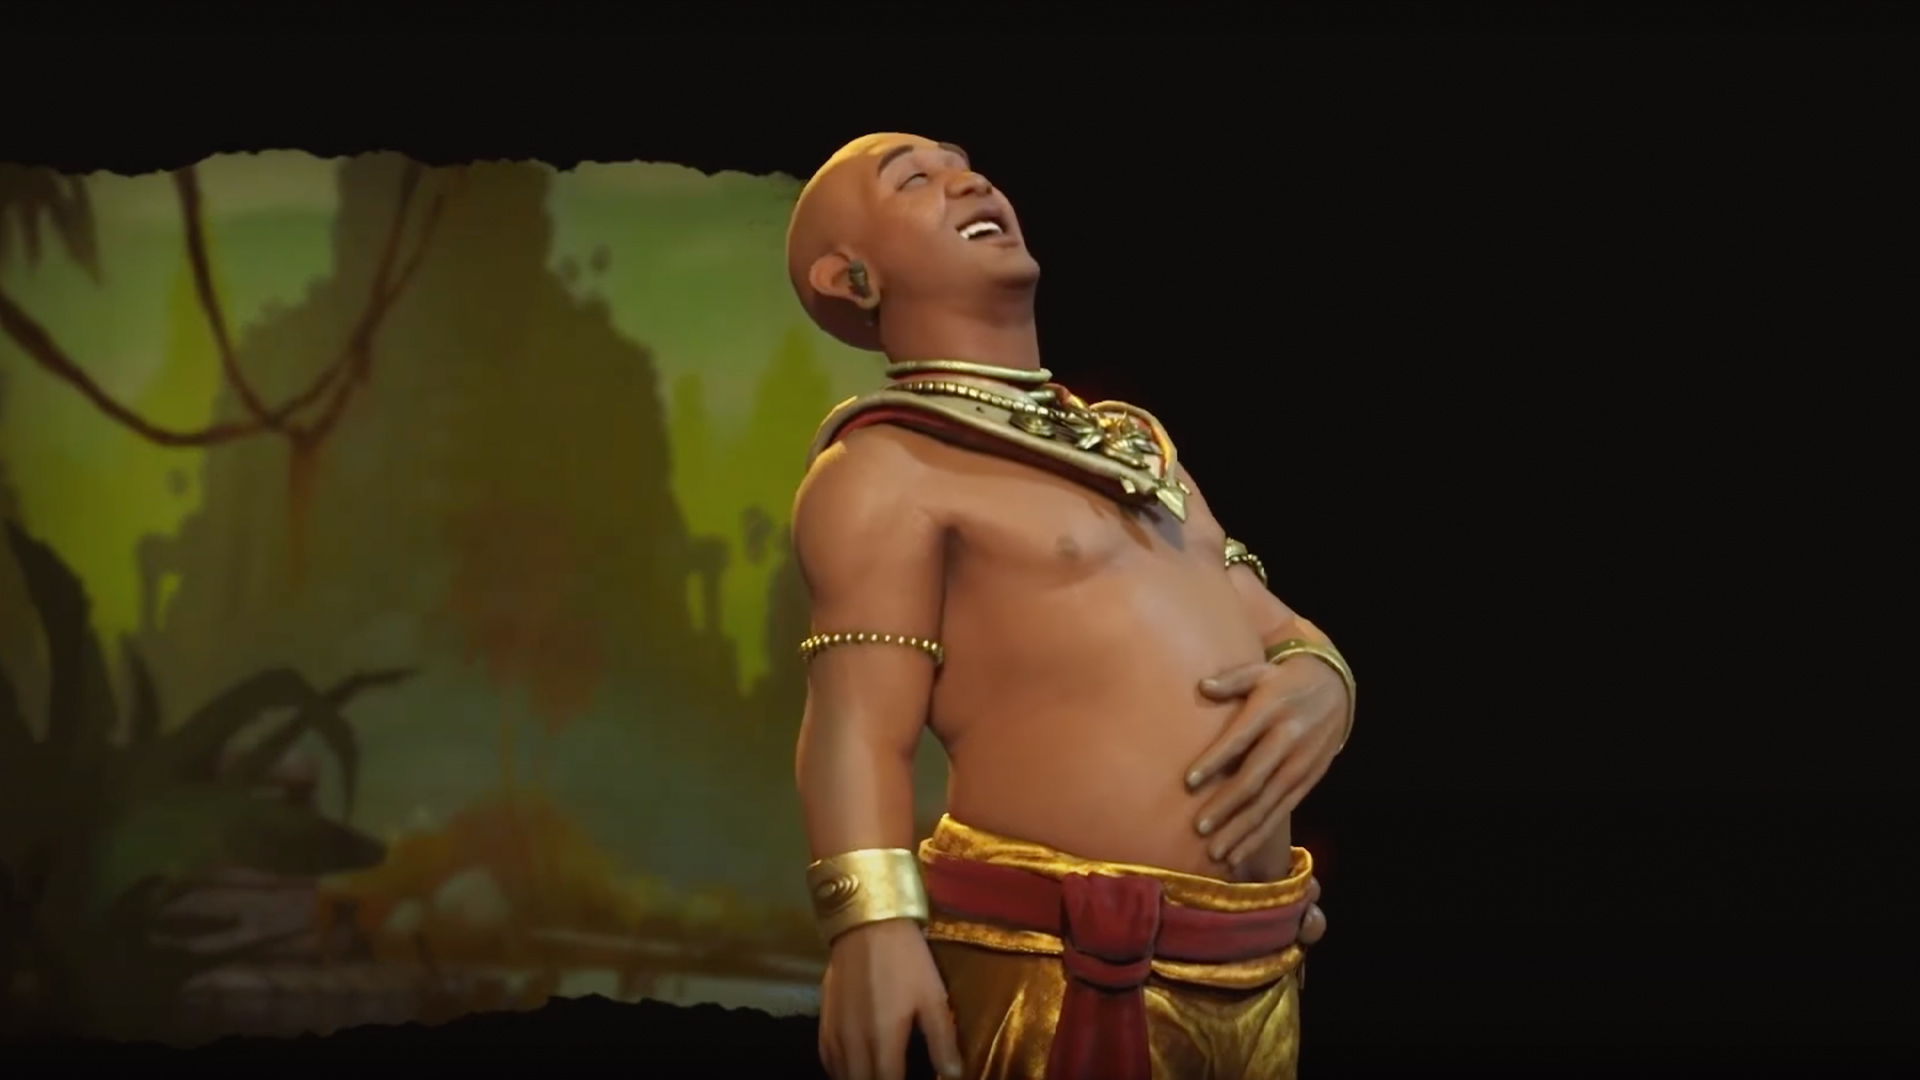 Civilization 6's AI has been going mad for science thanks to a few lines of code